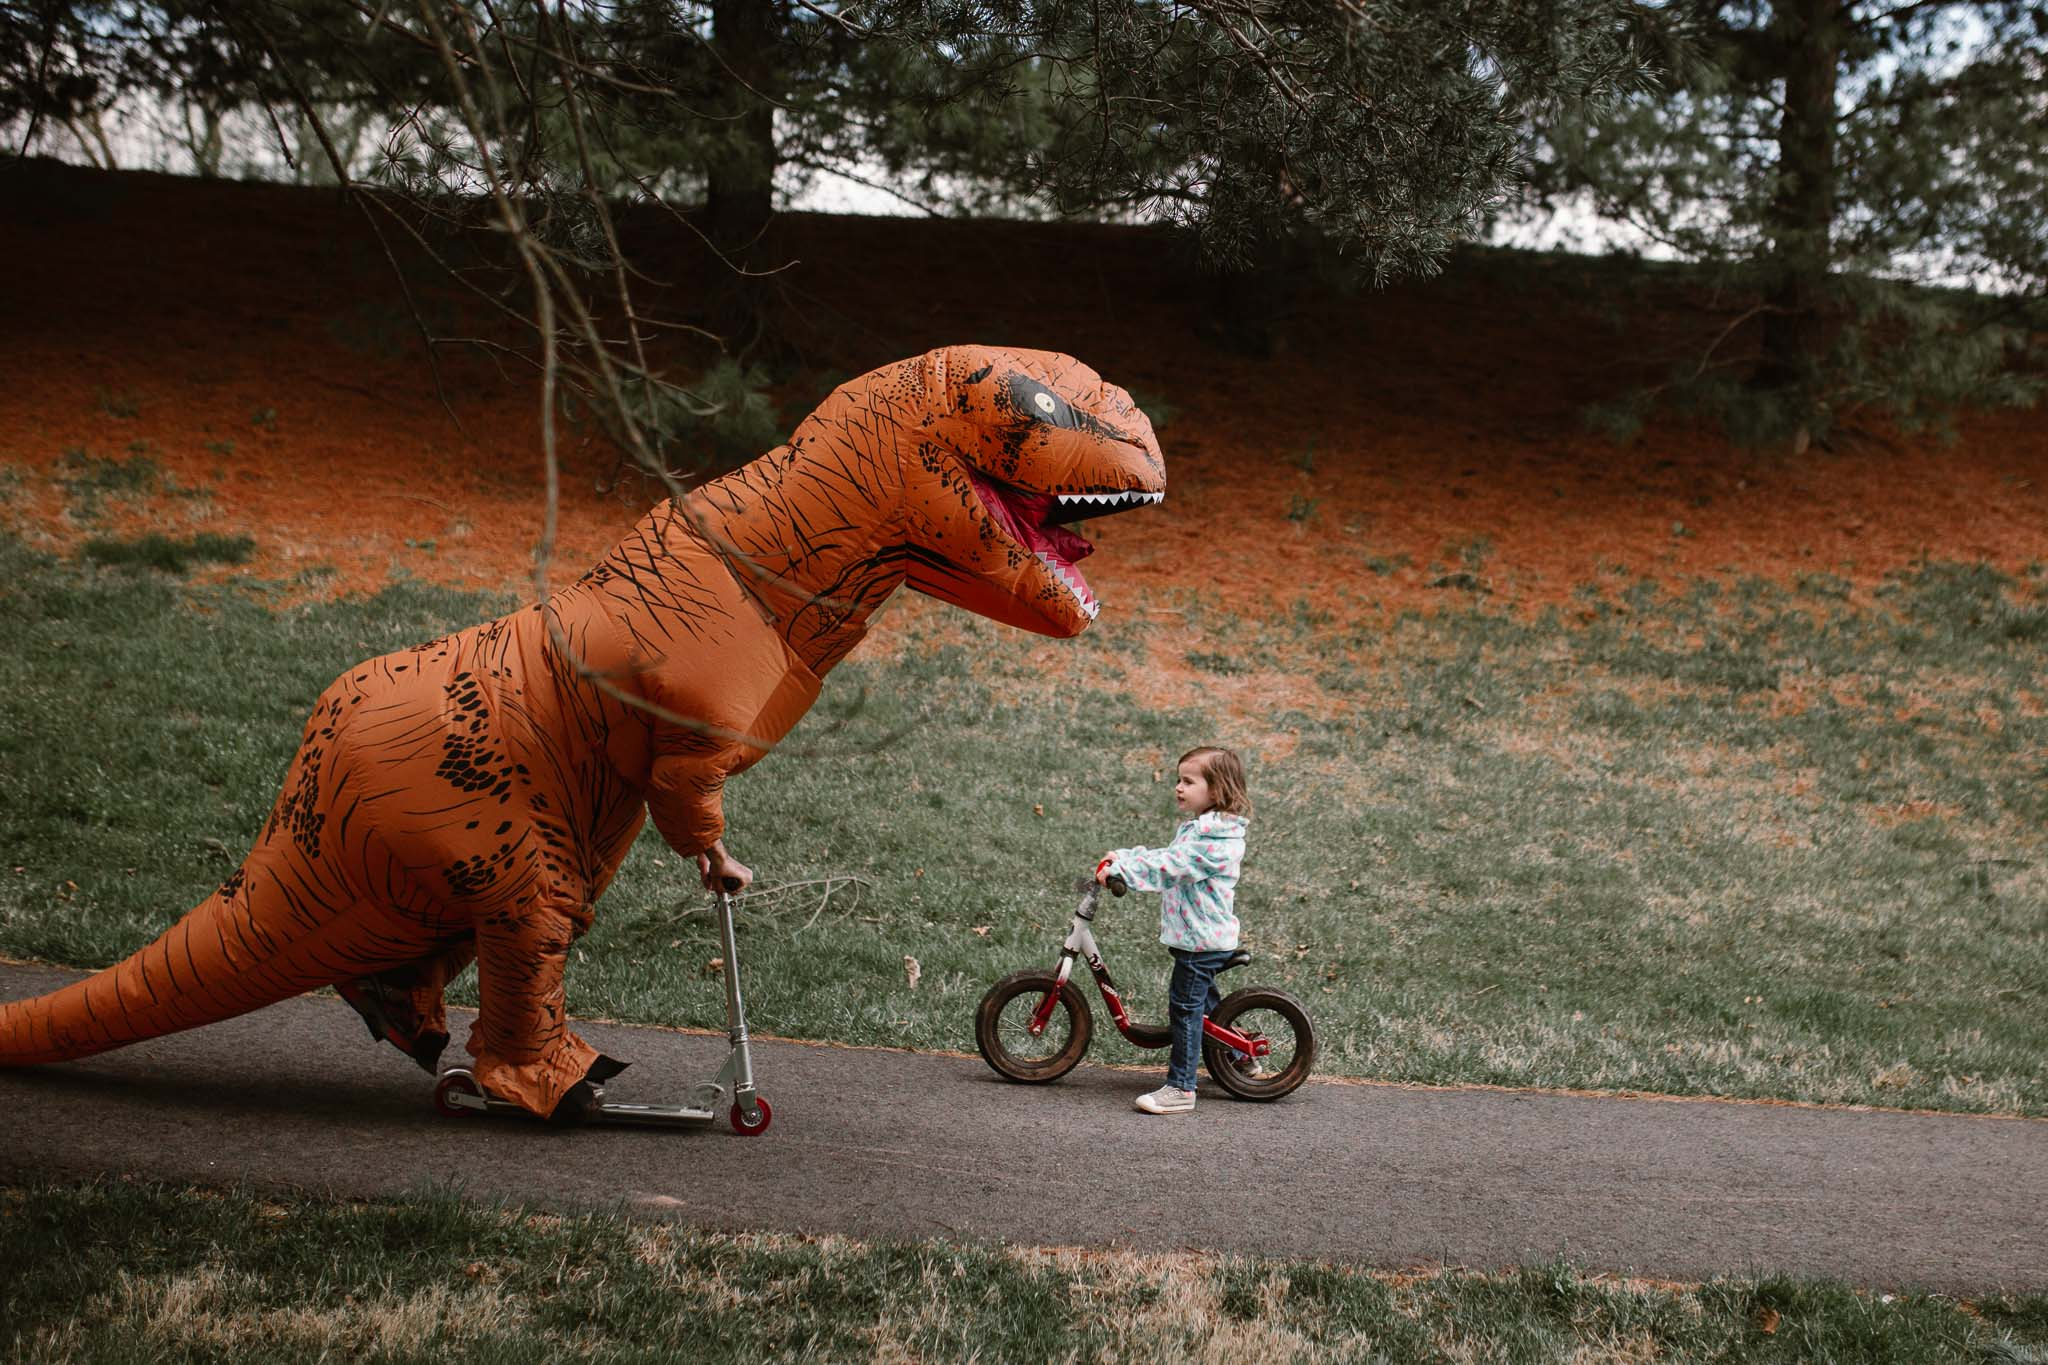 Girl on a bike and dinosaur on a scooter ride toward each other on a path in Ashburn, Virginia